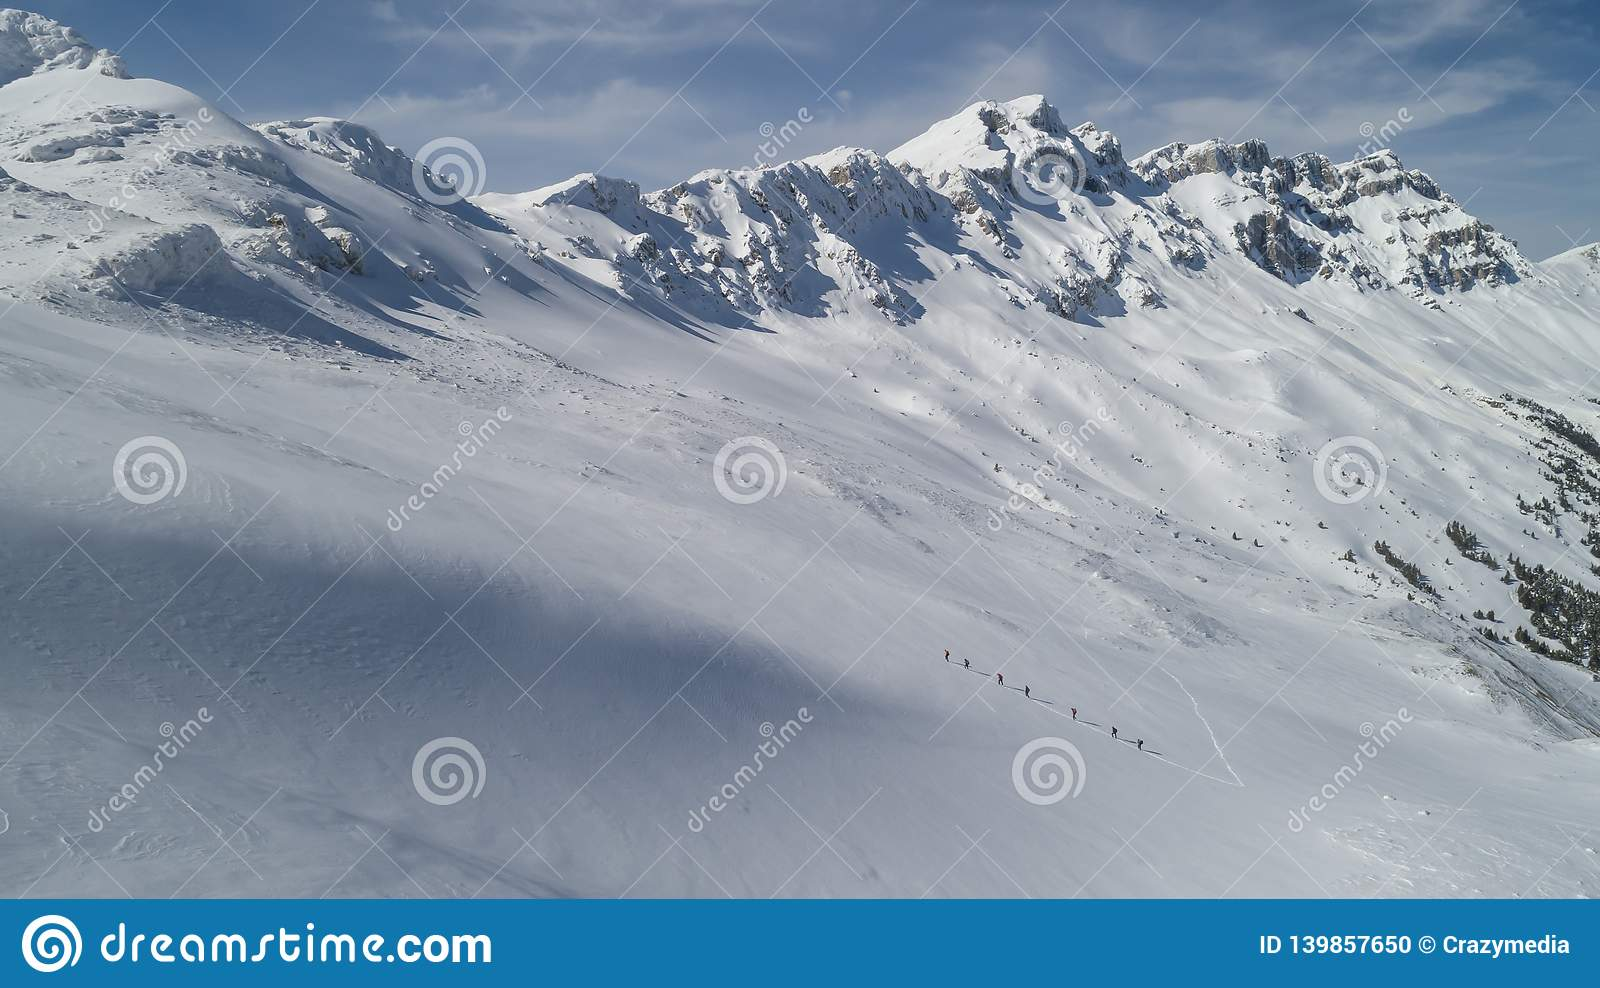 Picture of: 14 Taurus Mountains Map Photos Free Royalty Free Stock Photos From Dreamstime